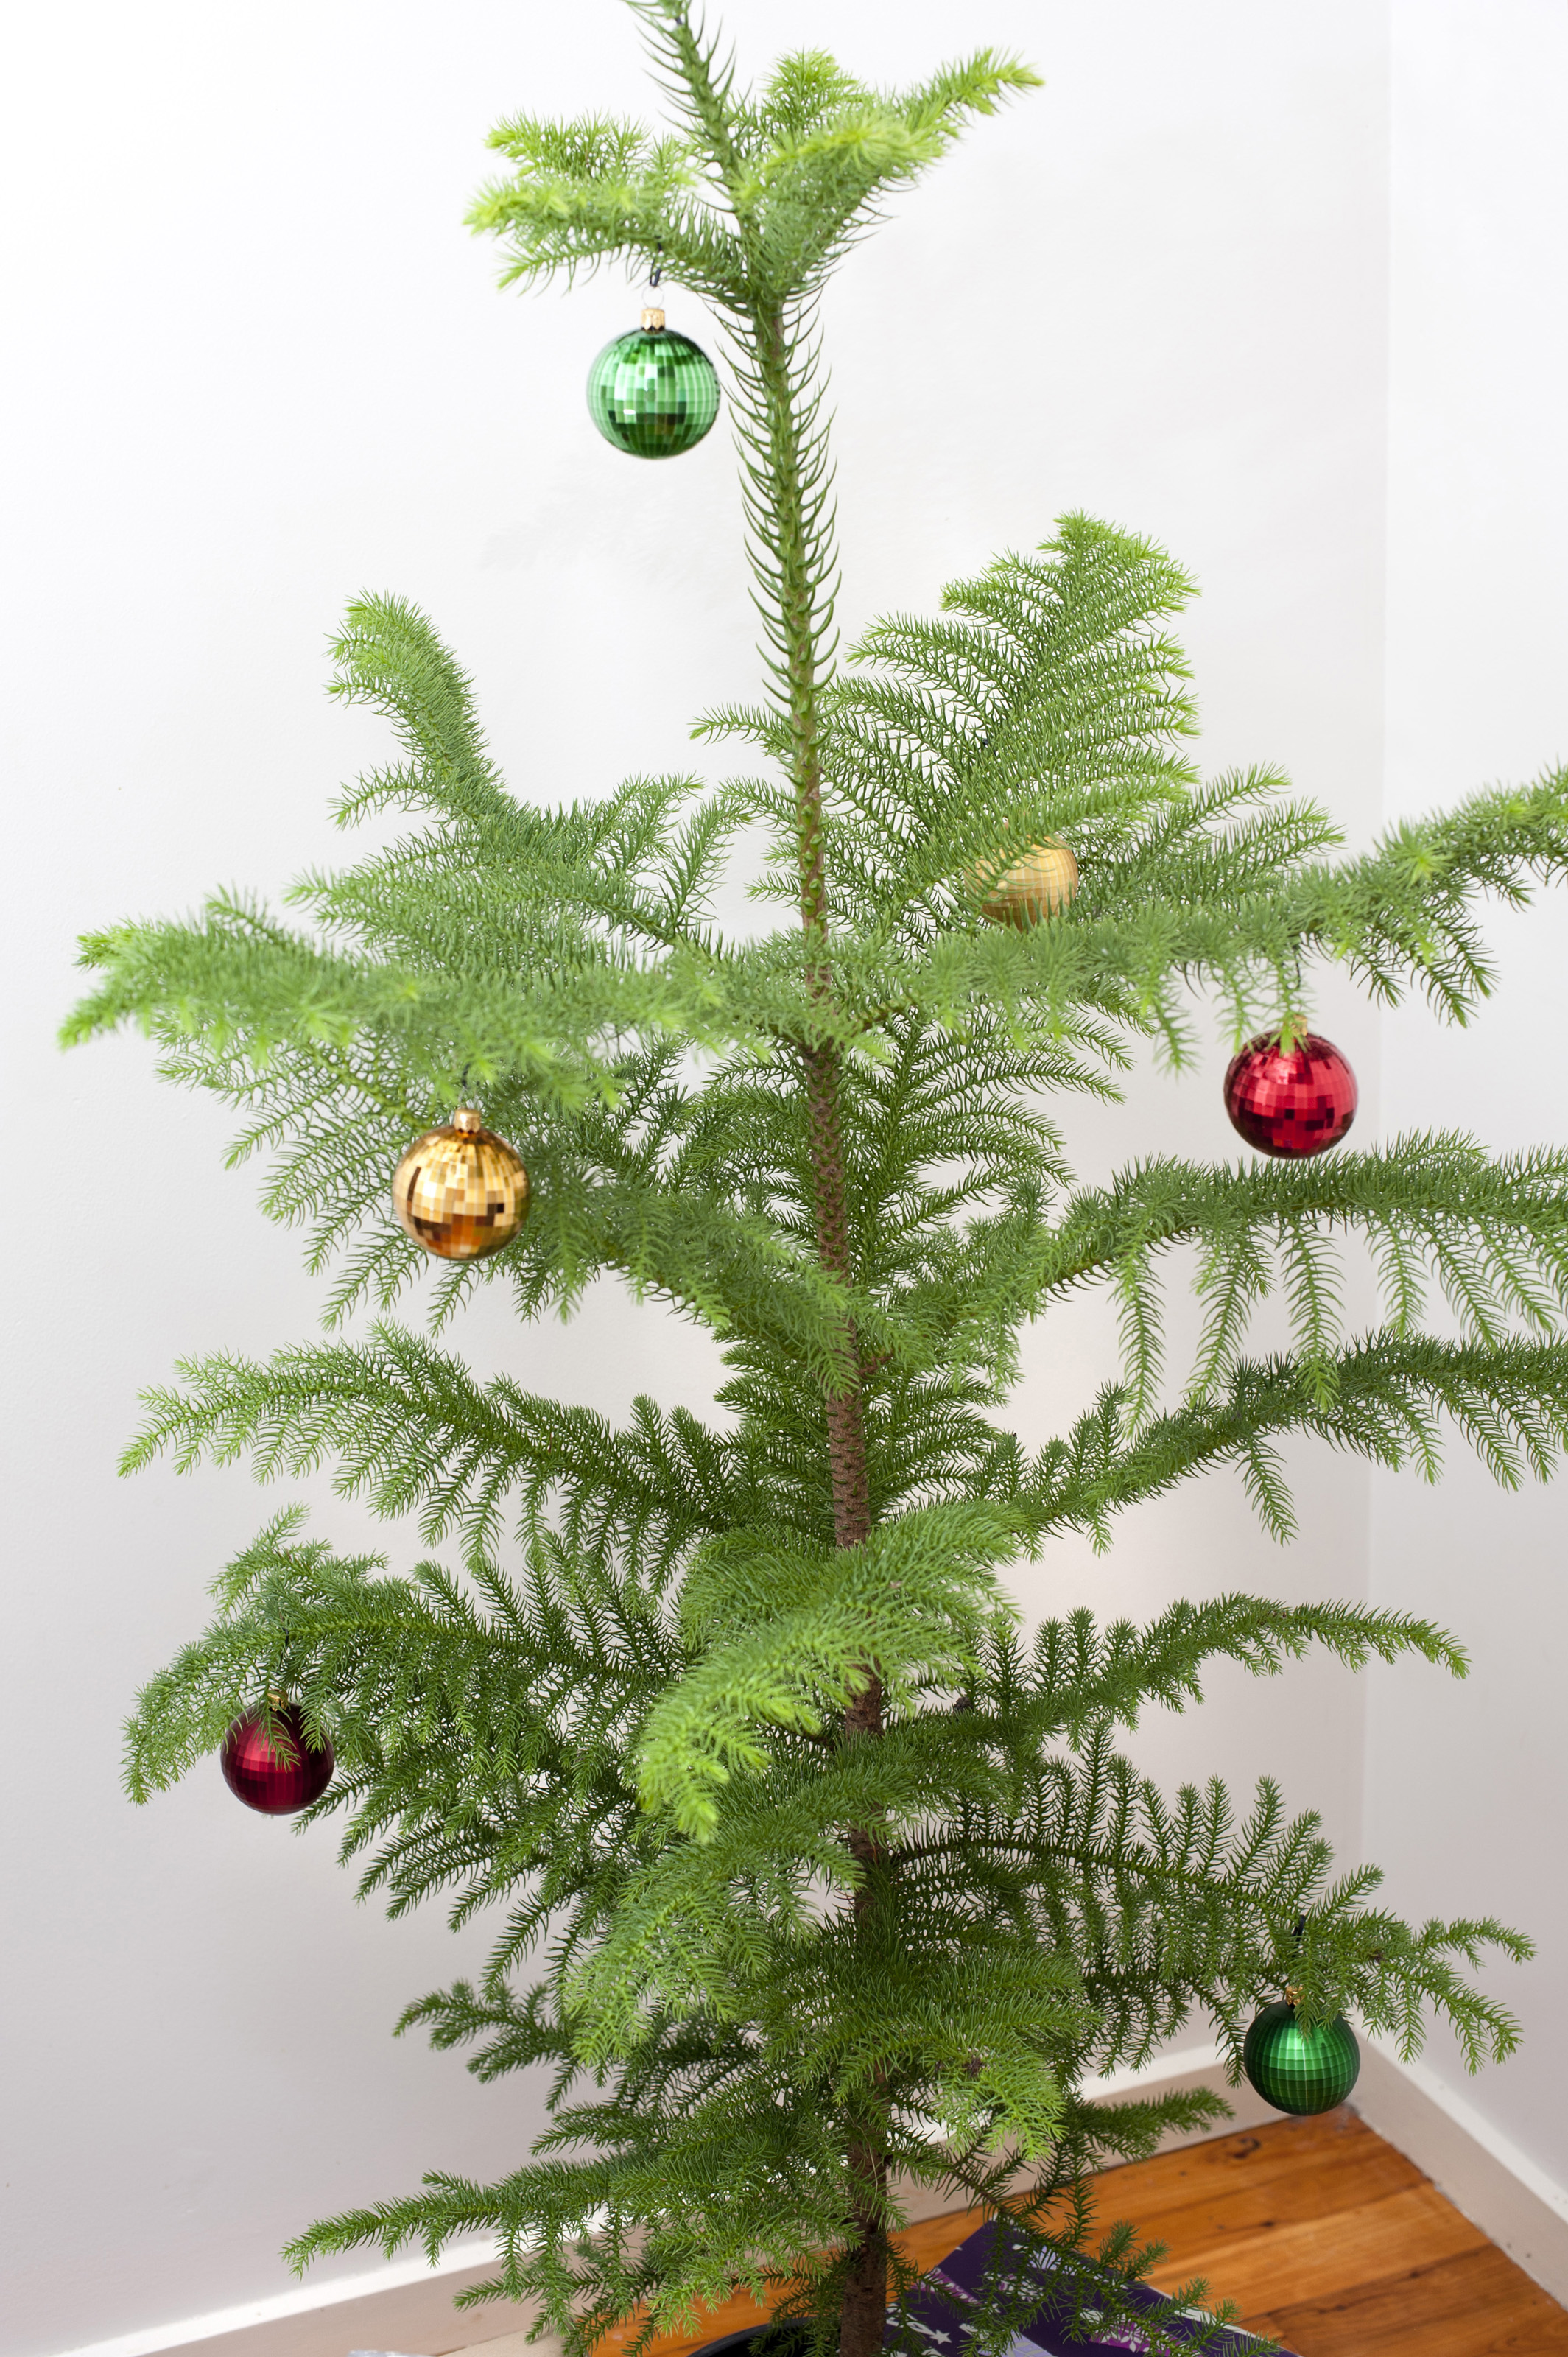 Free Stock Photo 8667 Real Christmas Tree With Colourful Baubles